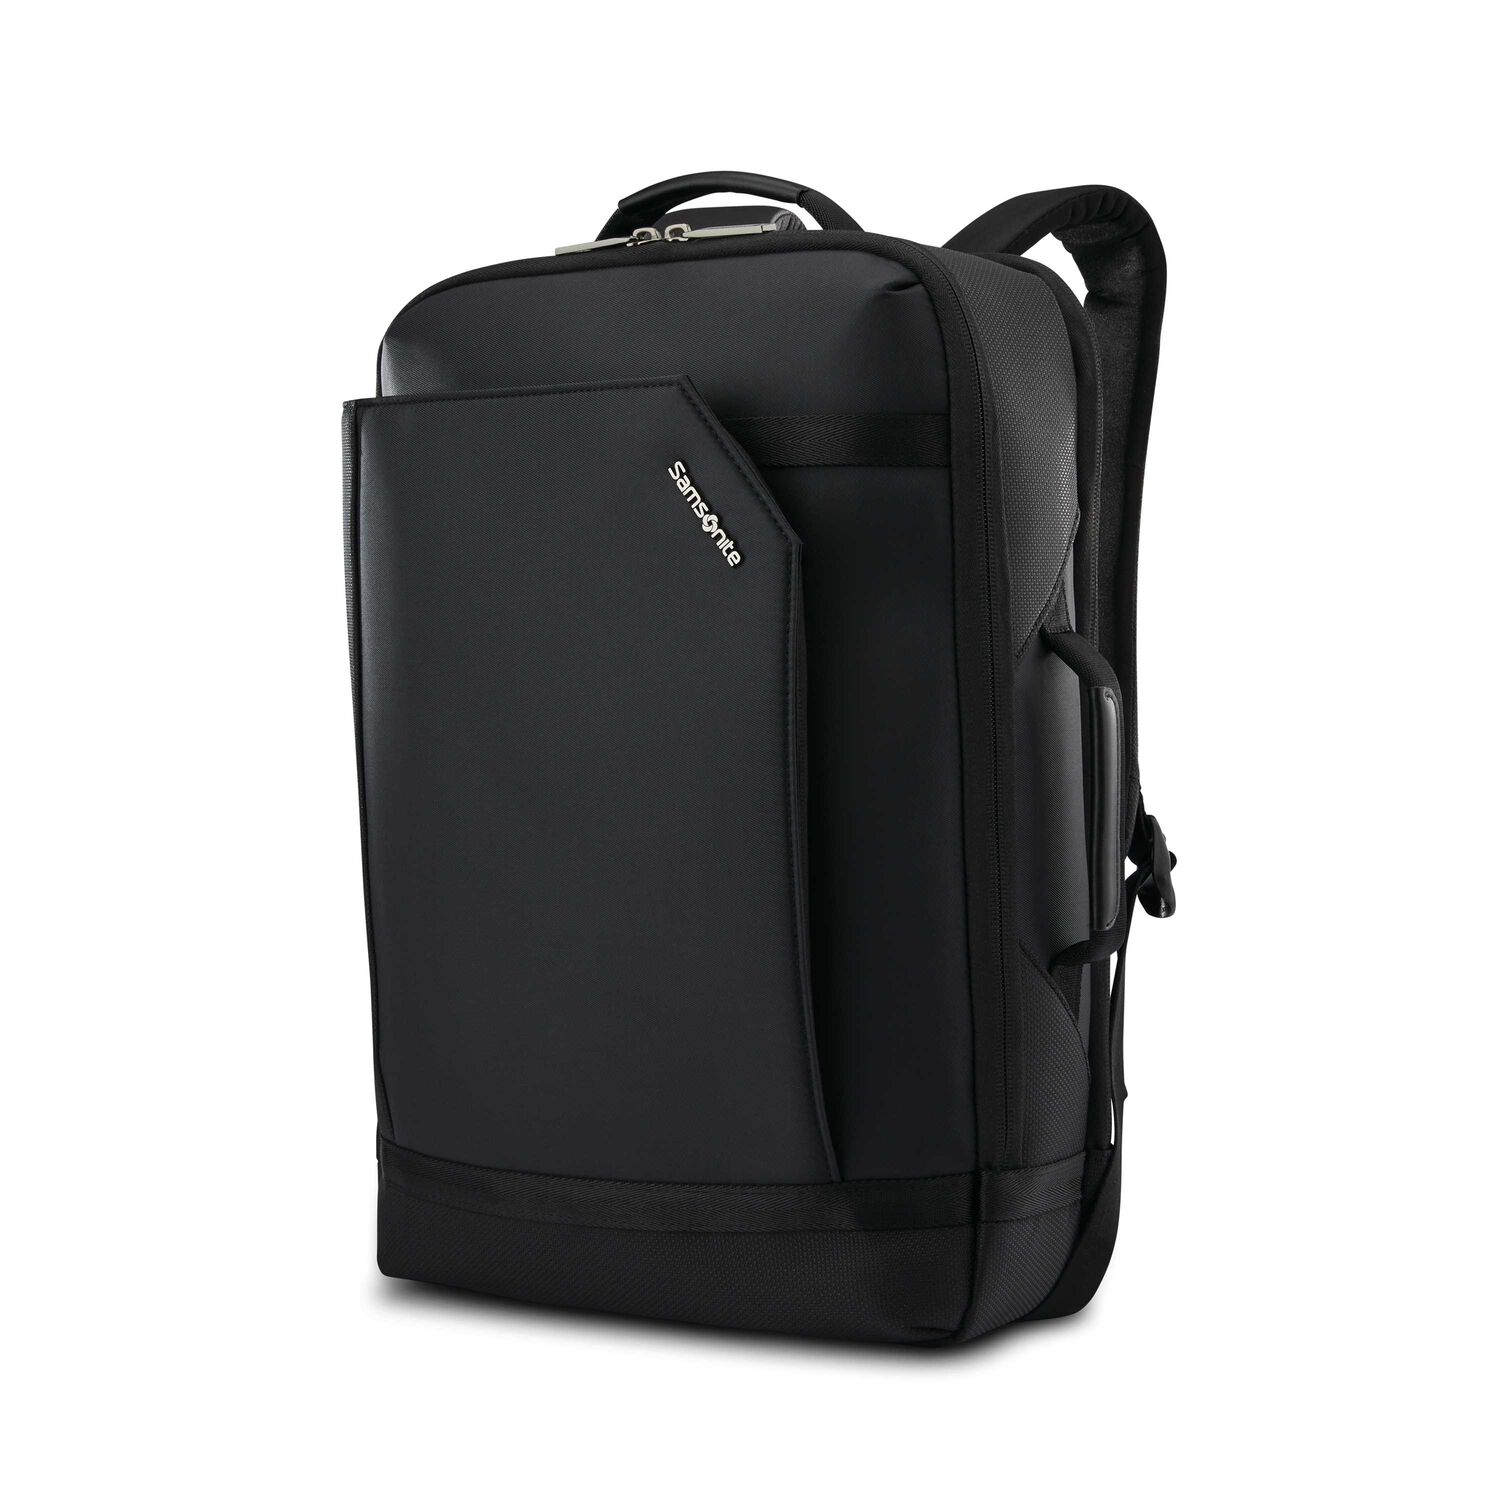 Samsonite Encompass Convertible Backpack in the color Black.